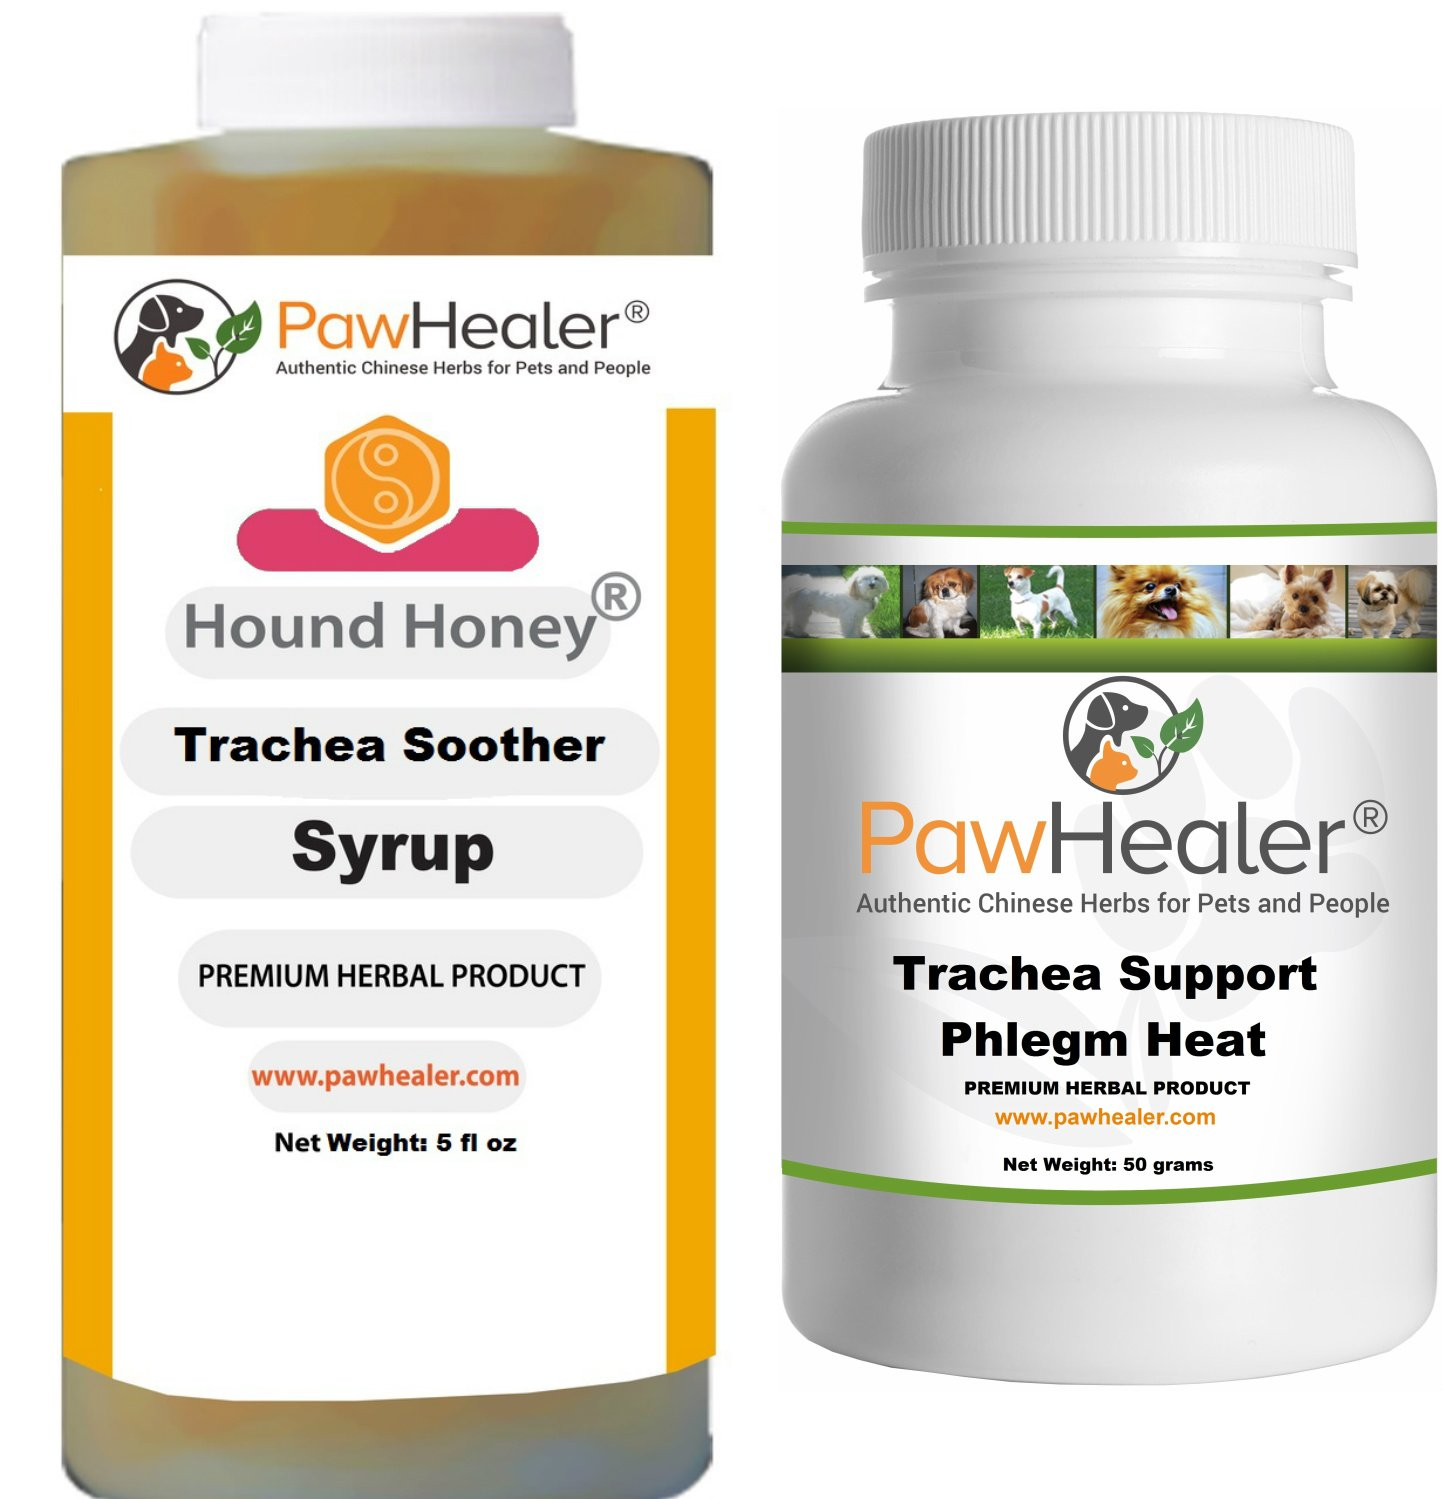 Trachea Soother Syrup Bundle with Trachea Support: Phlegm Heat - Natural Herbal Remedy for Symptoms of Collapsed Trachea for Dogs - Combo of (1 Bottle) 5 fl oz Syrup & (1 Bottle) 50 Grams Powder ... by PawHealer